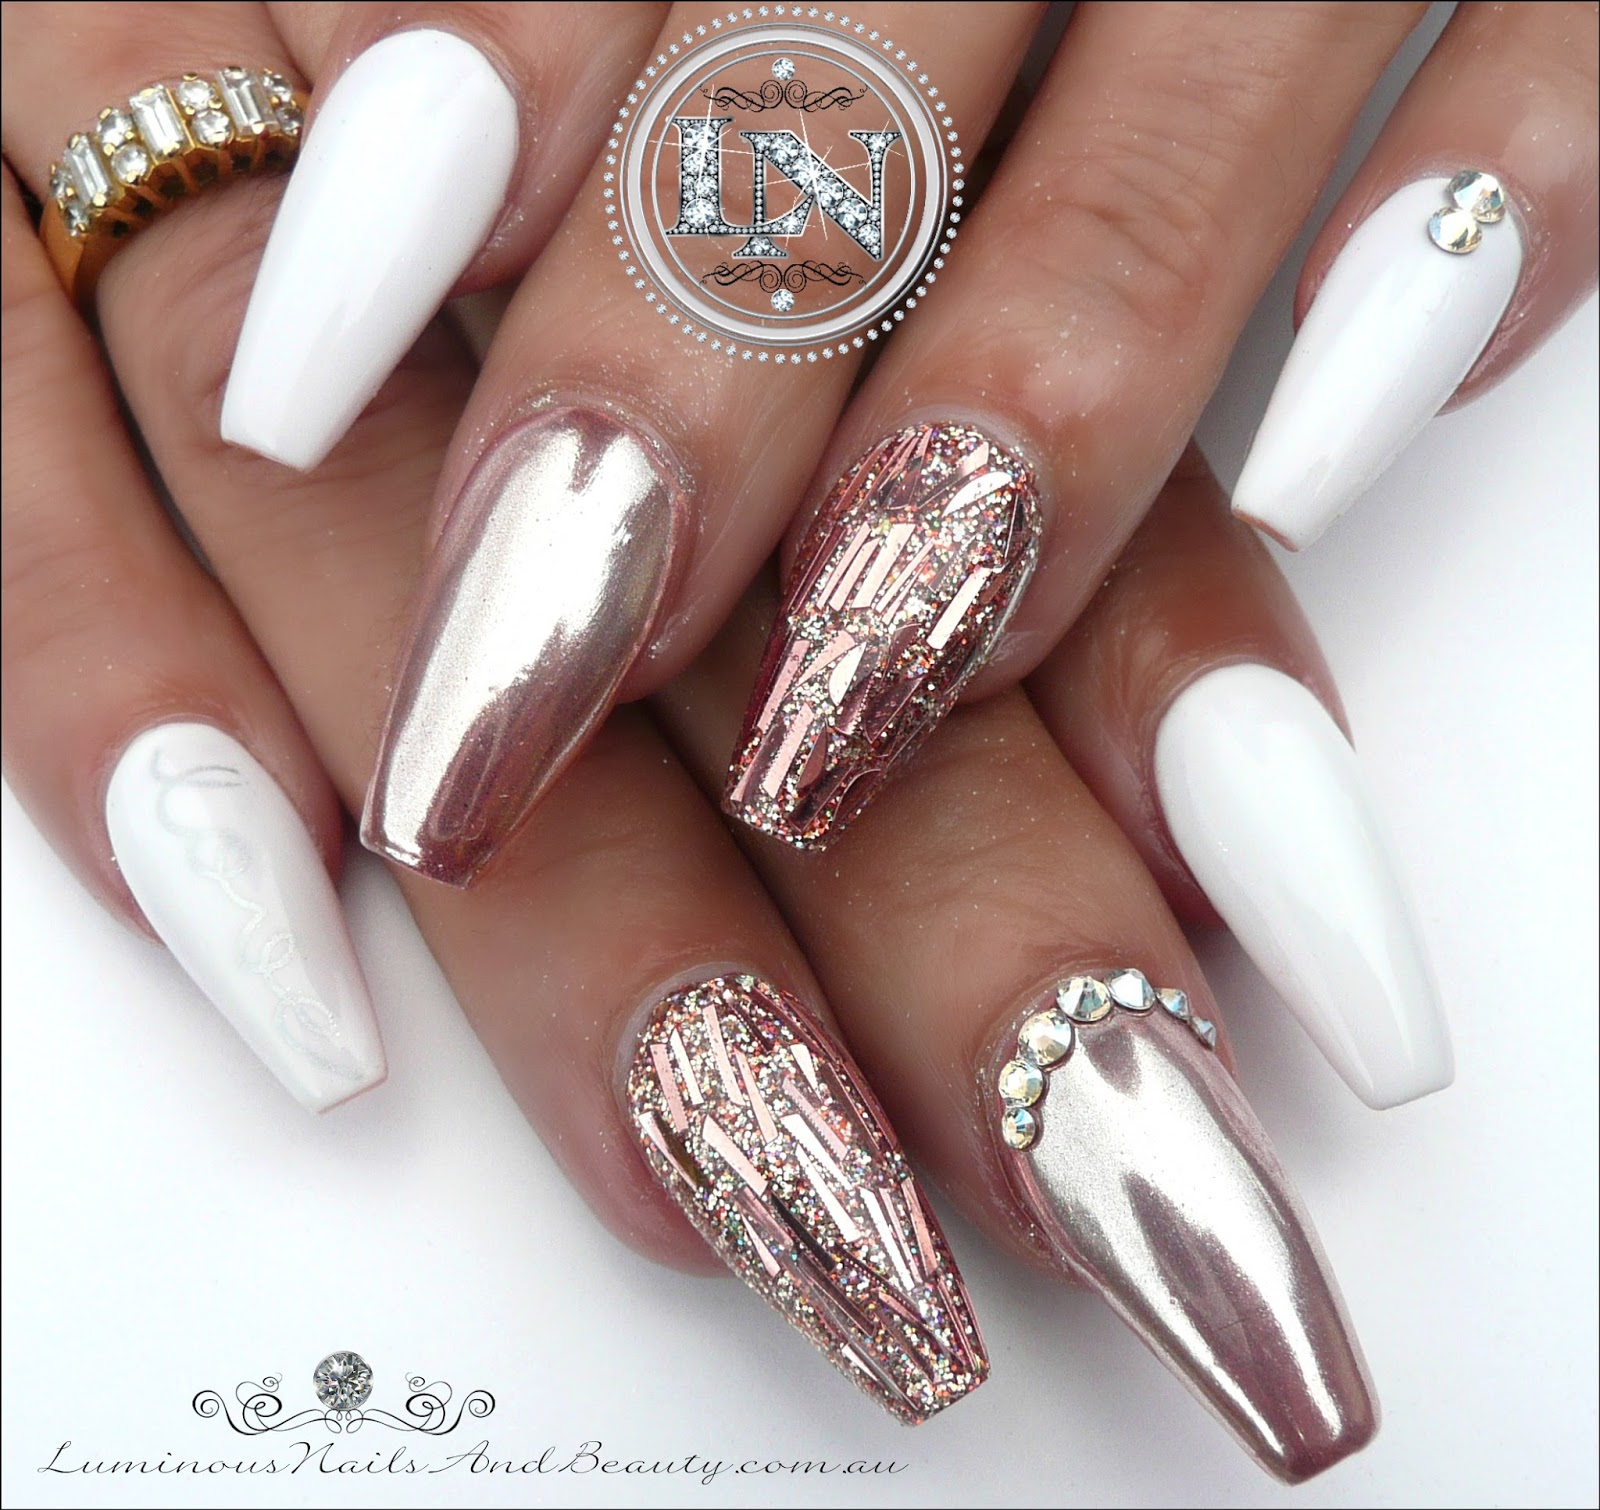 Luminous Nails: Glamorous Rose Gold Chrome & White Gel Nails ...